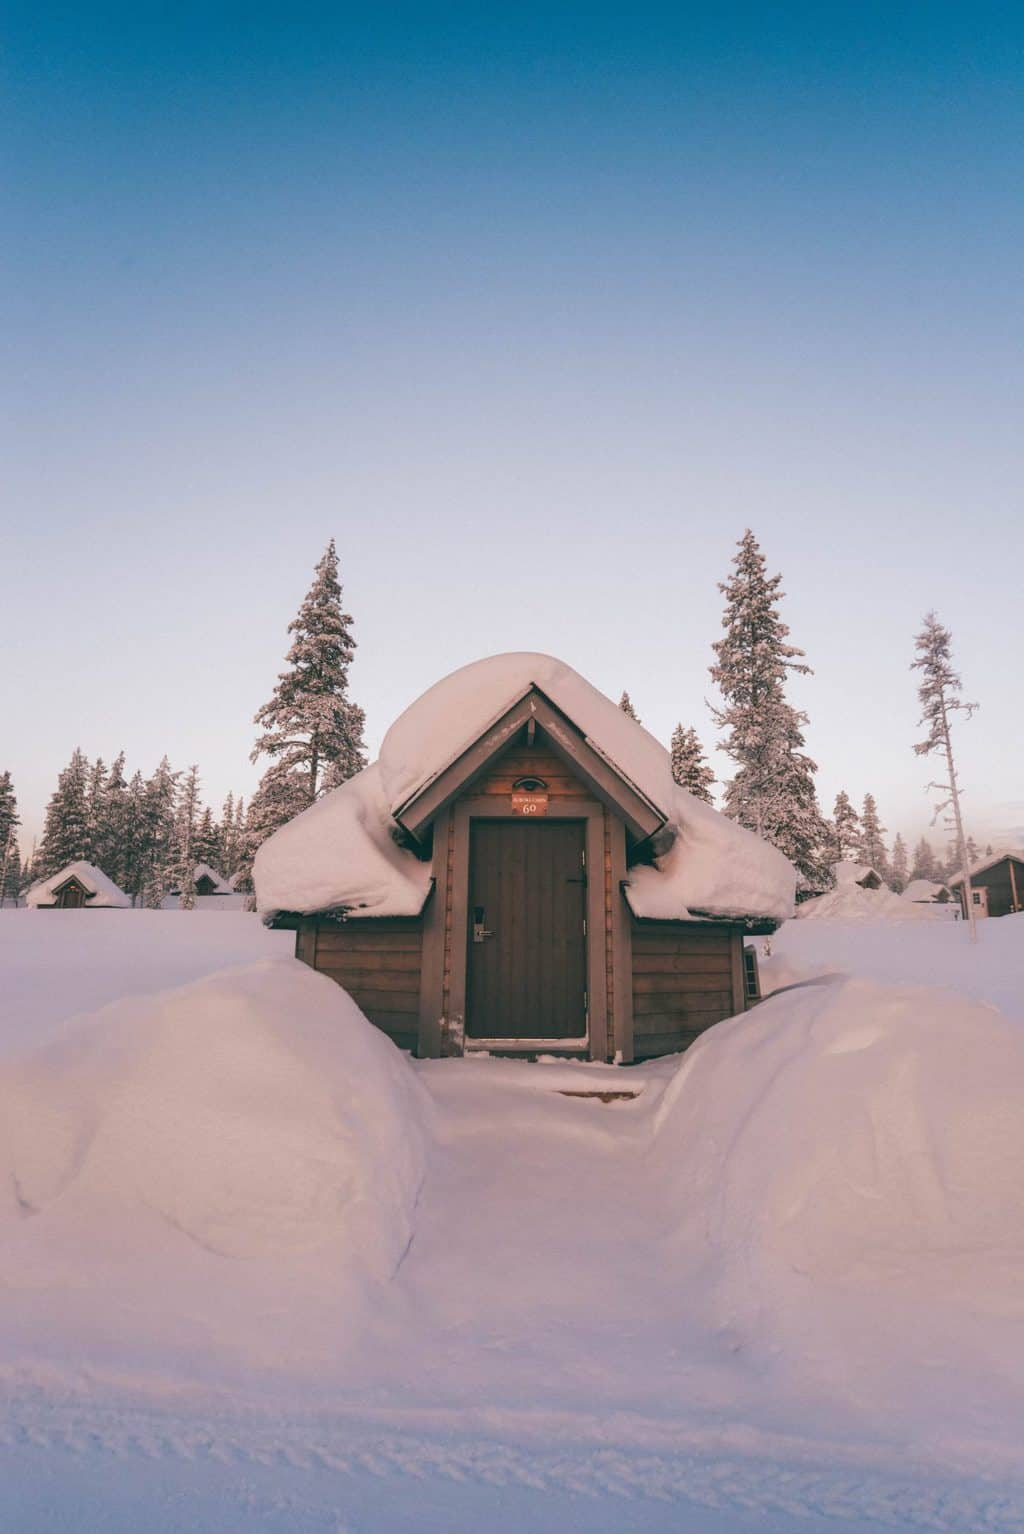 An aurora cabin surrounded by snow Finnish Lapland, Lapland destinations, Lapland Finland, Inghams